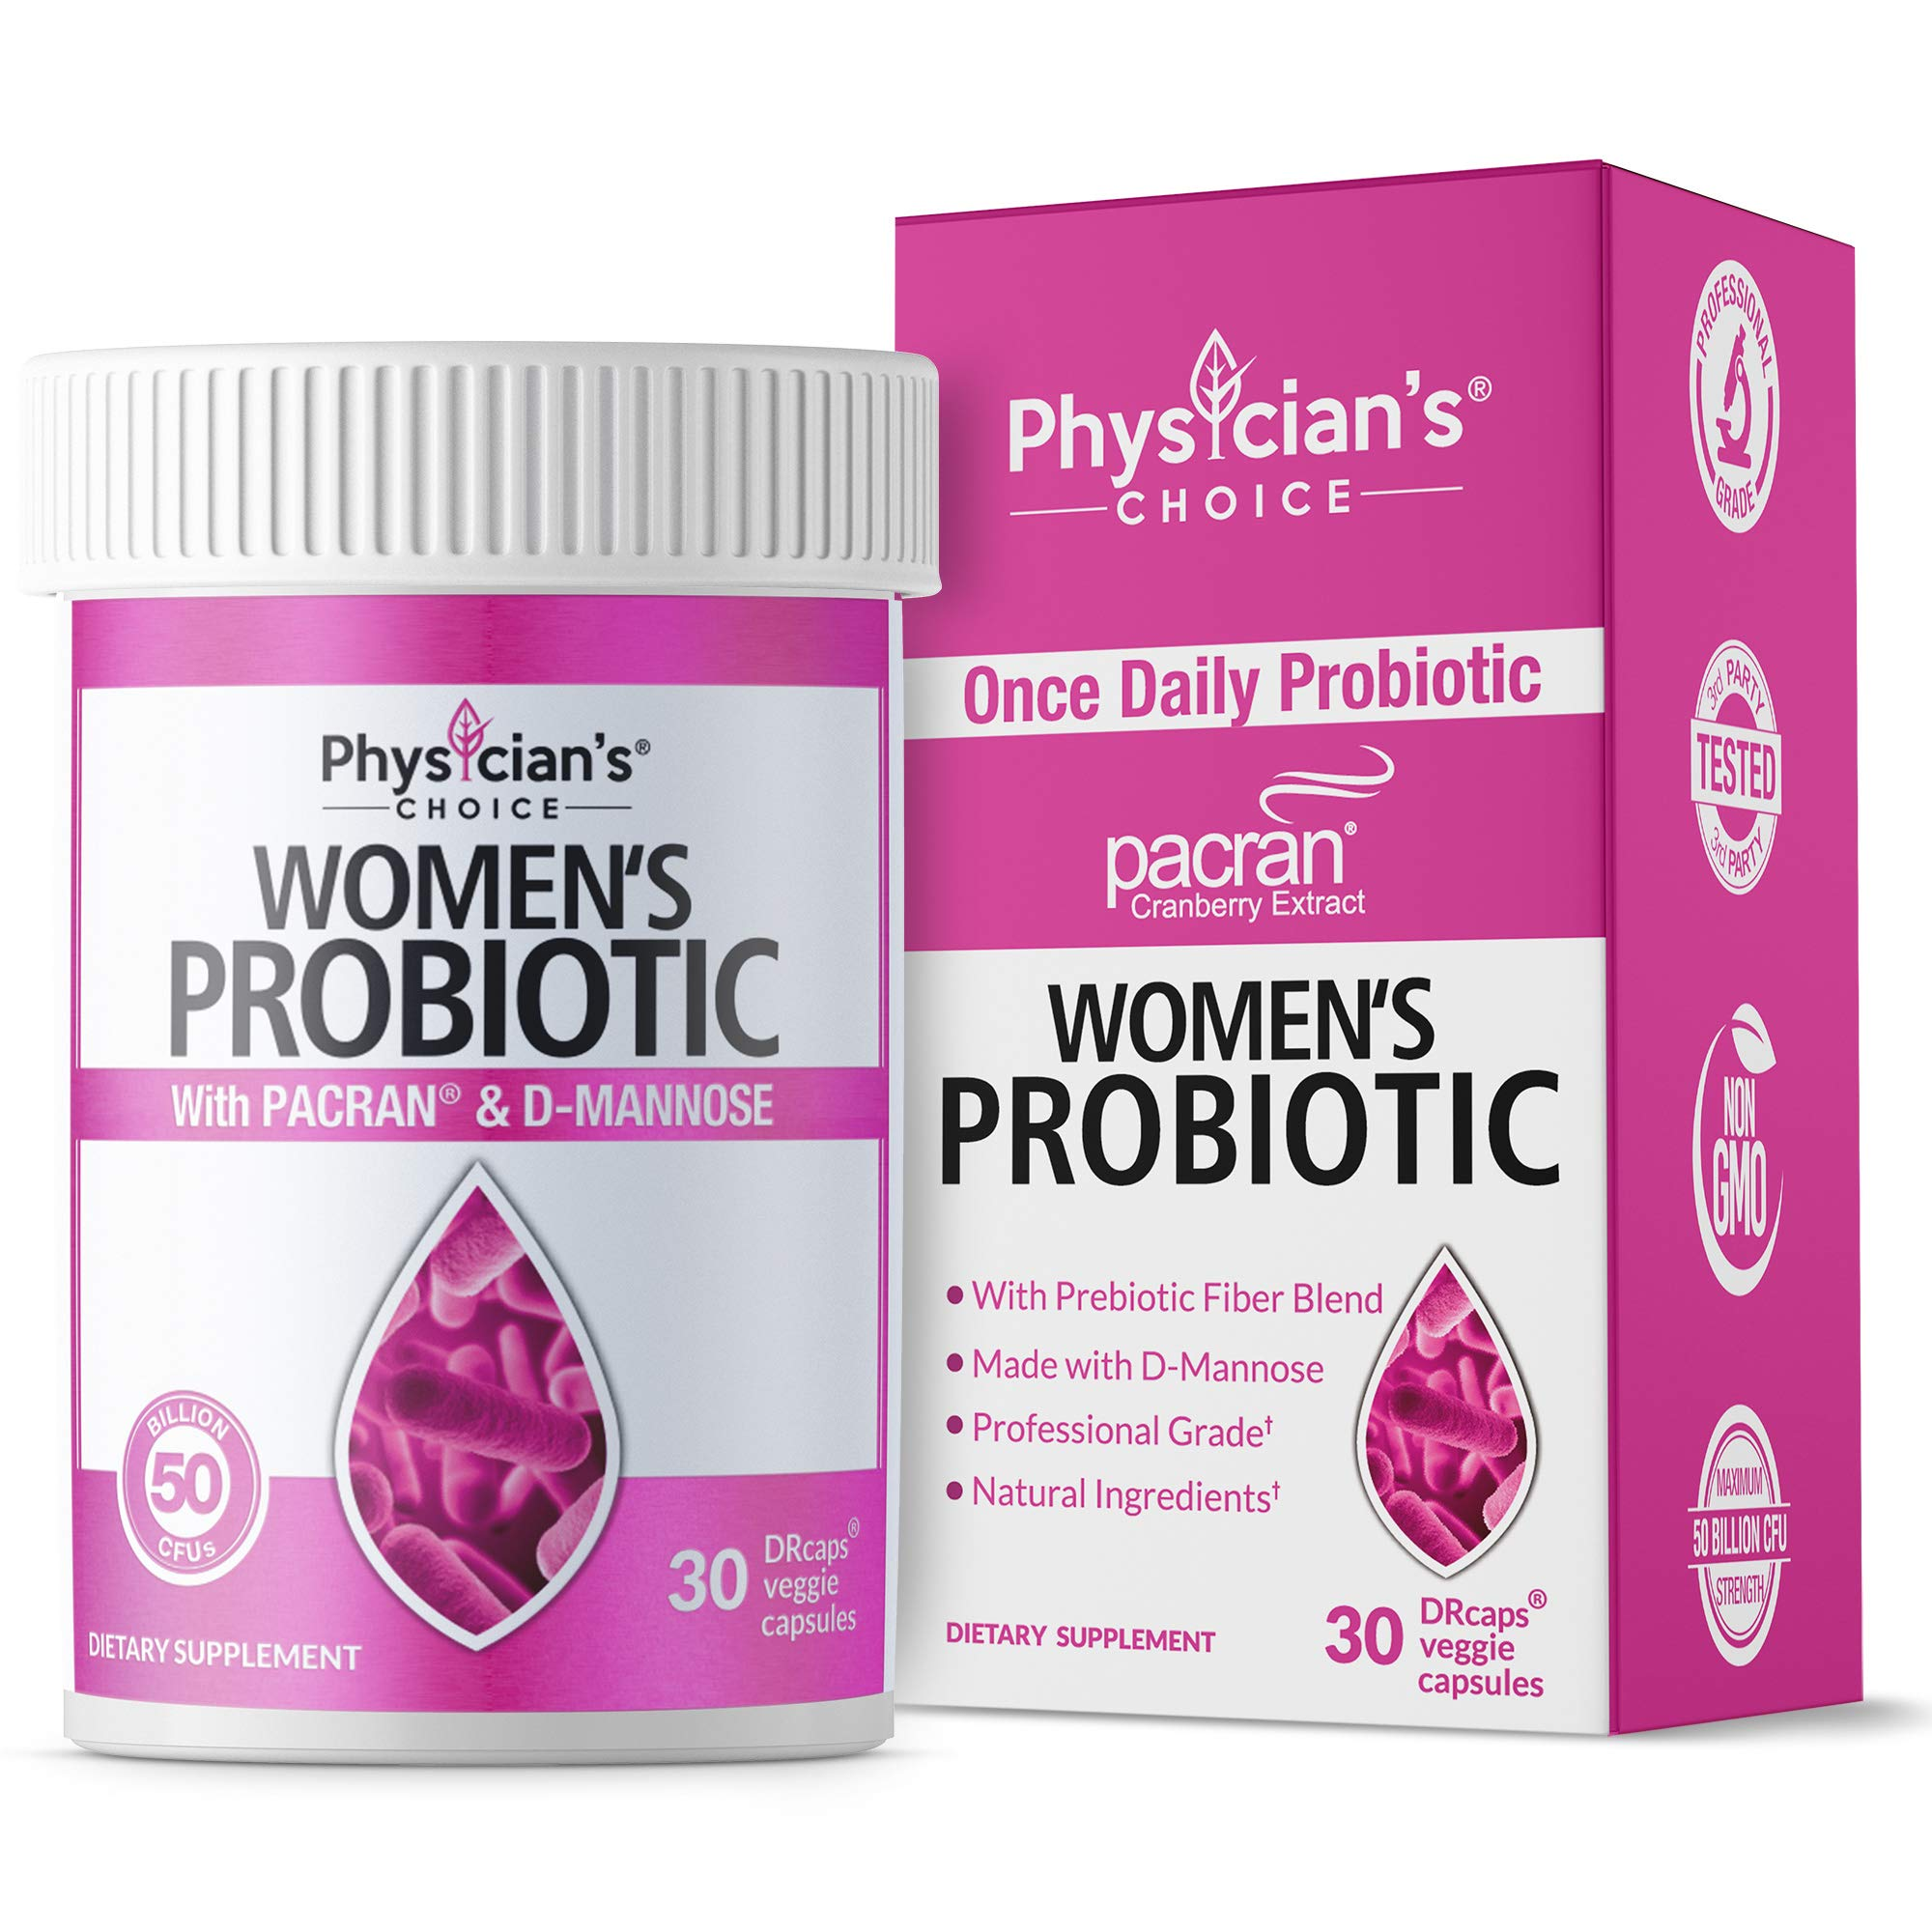 Probiotics for Women - Clinically Proven Pacran - Organic Prebiotics, 50 Billion CFU, D-Mannose & Wholefruit Cranberry for Digestive, Immune, Feminine Health, Soy & Dairy Free, 30 Vegan Capsules by Physician's CHOICE